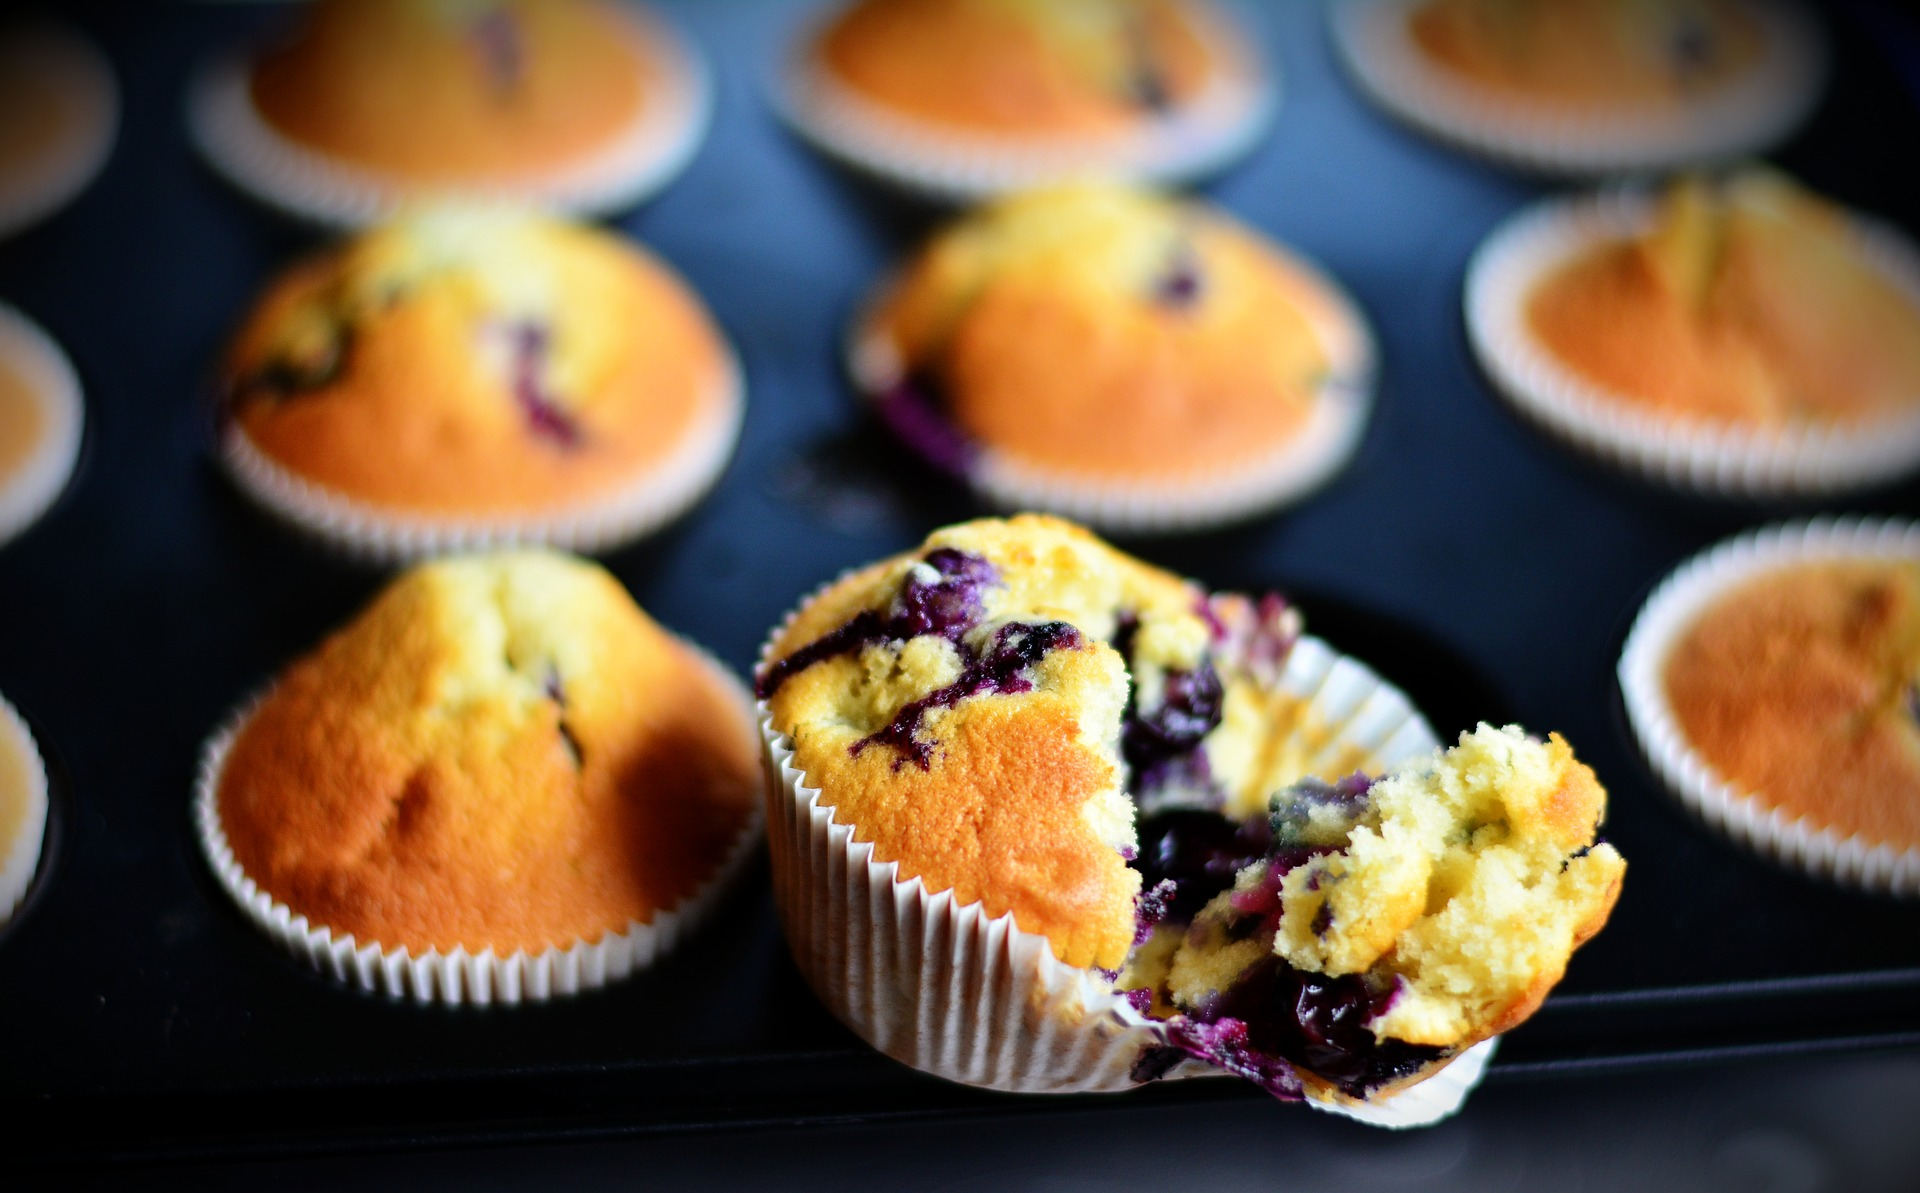 Blueberry muffins fresh from the oven in the background. One is opened to show the tasty inside.